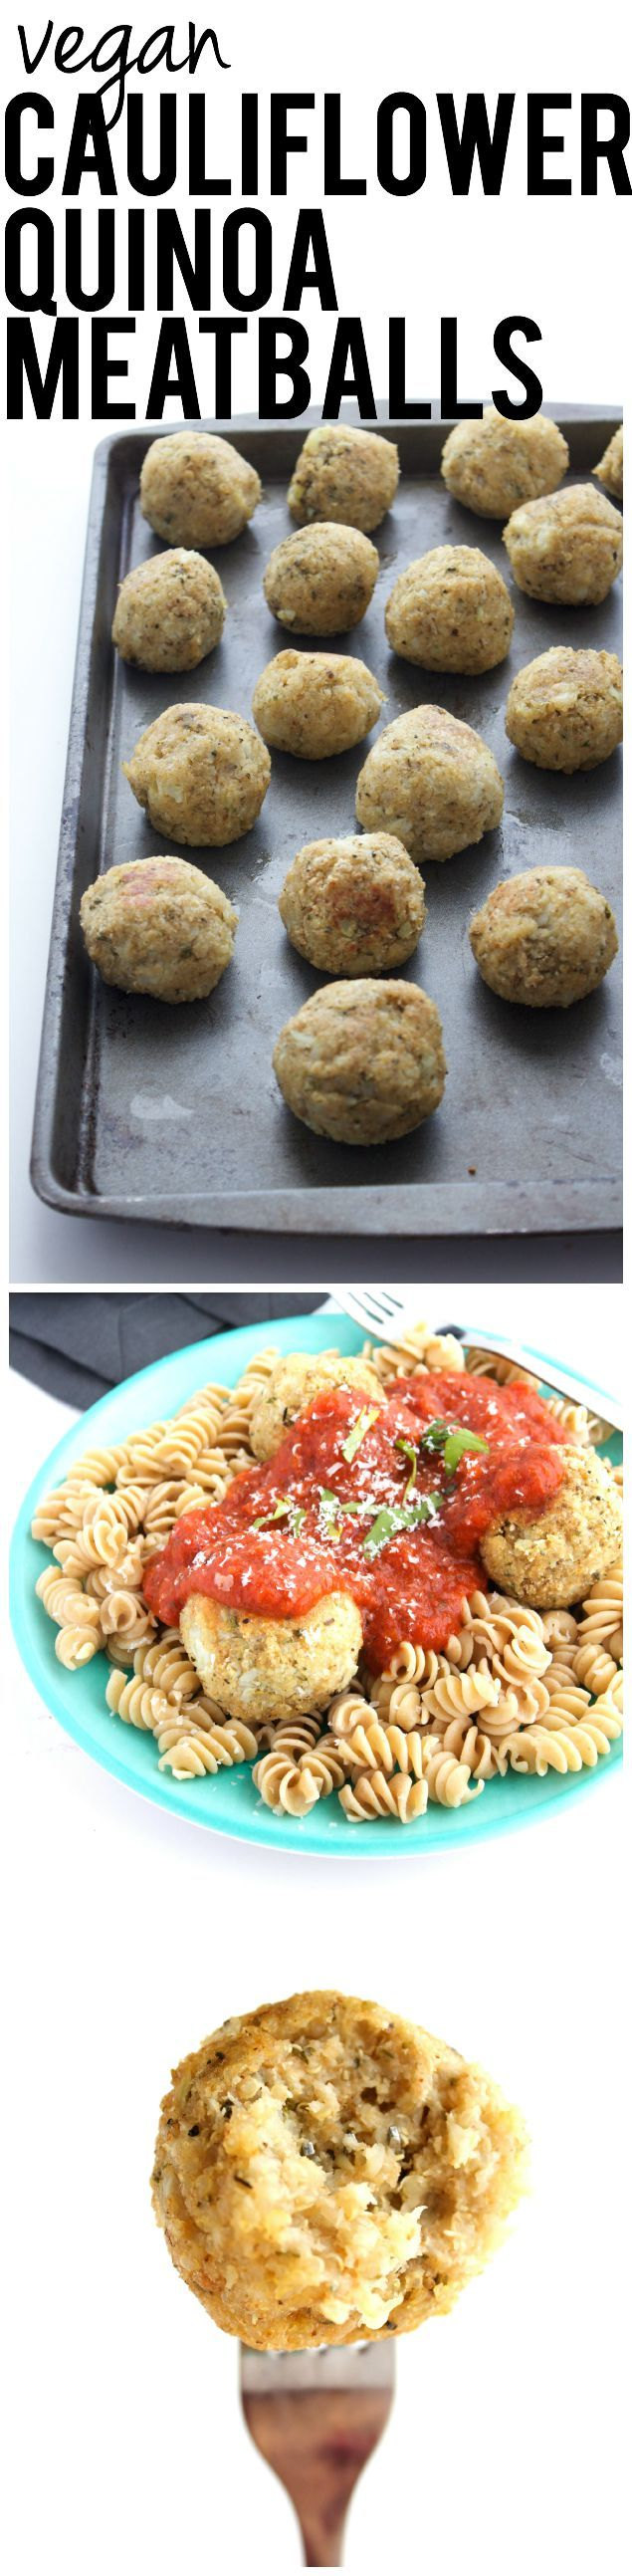 Made from cauliflower and quinoa, these are a wonderful meat-free meatball option! vegan